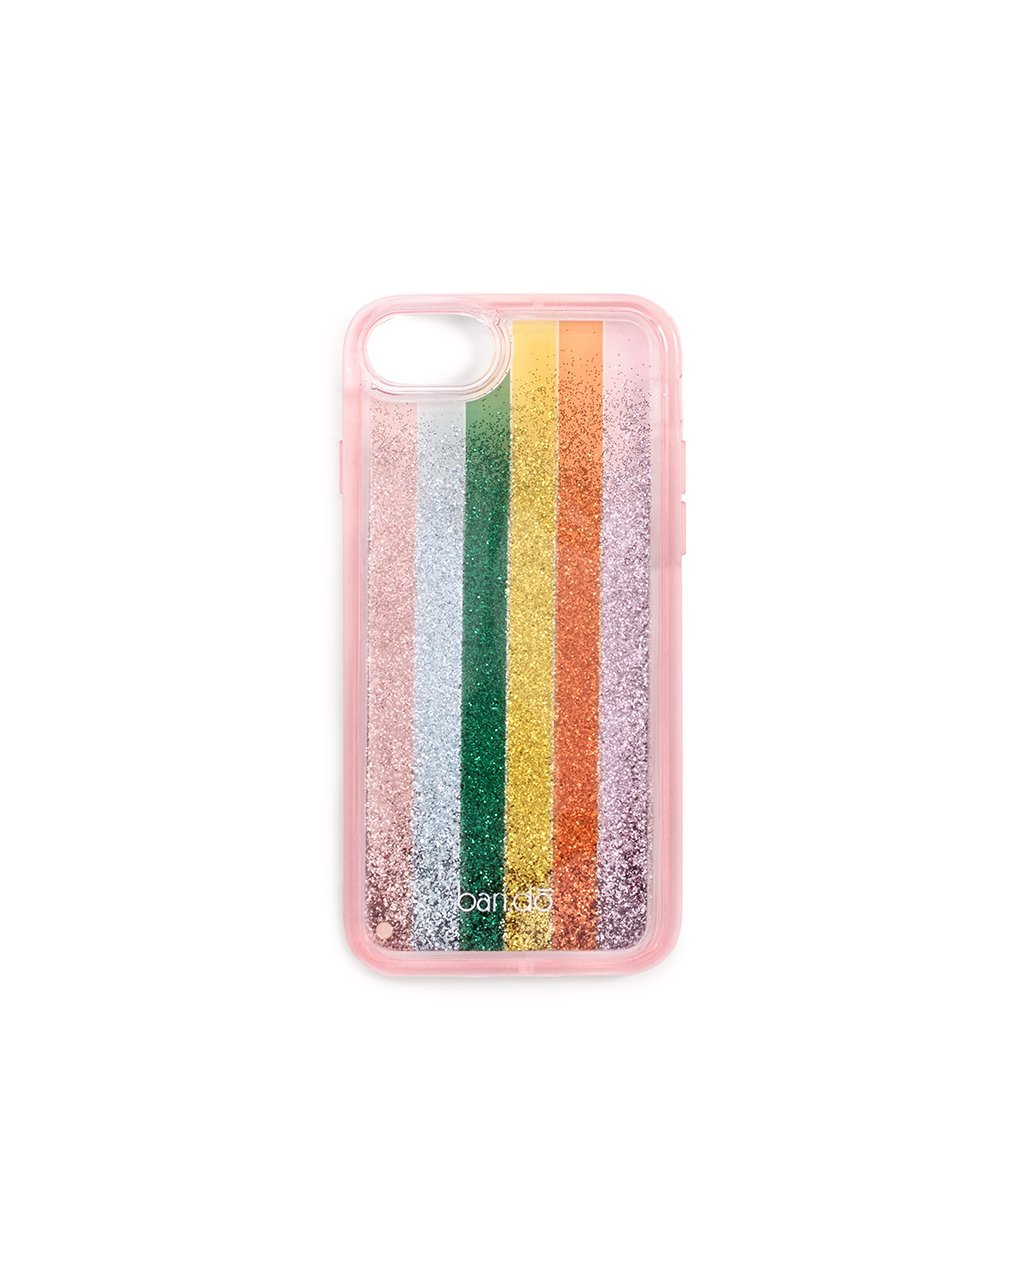 Glitter Bomb iPhone 7 Case - Color Wheel